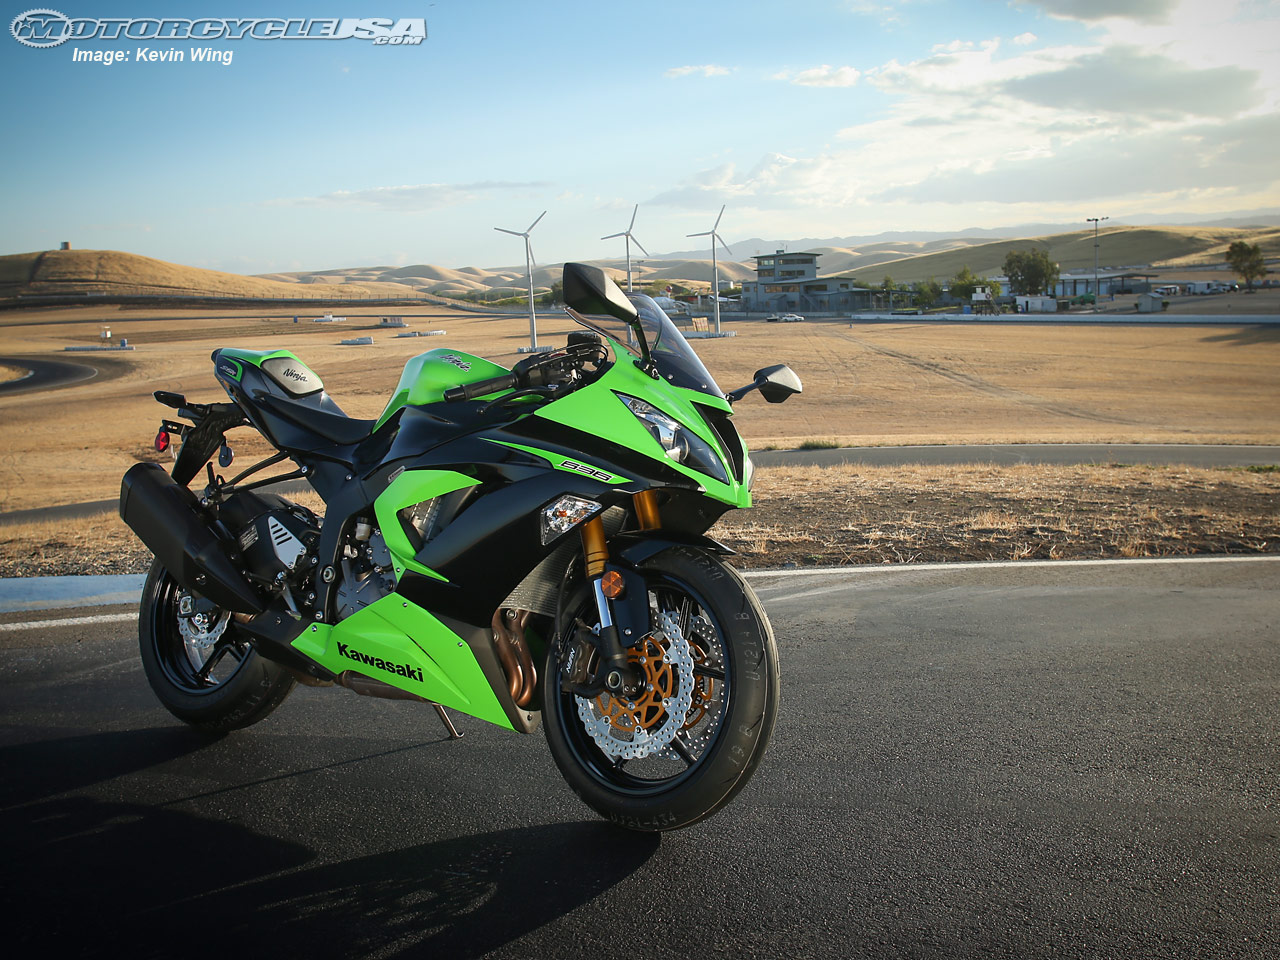 Zx6r Wallpaper on WallpaperGetcom 1280x960